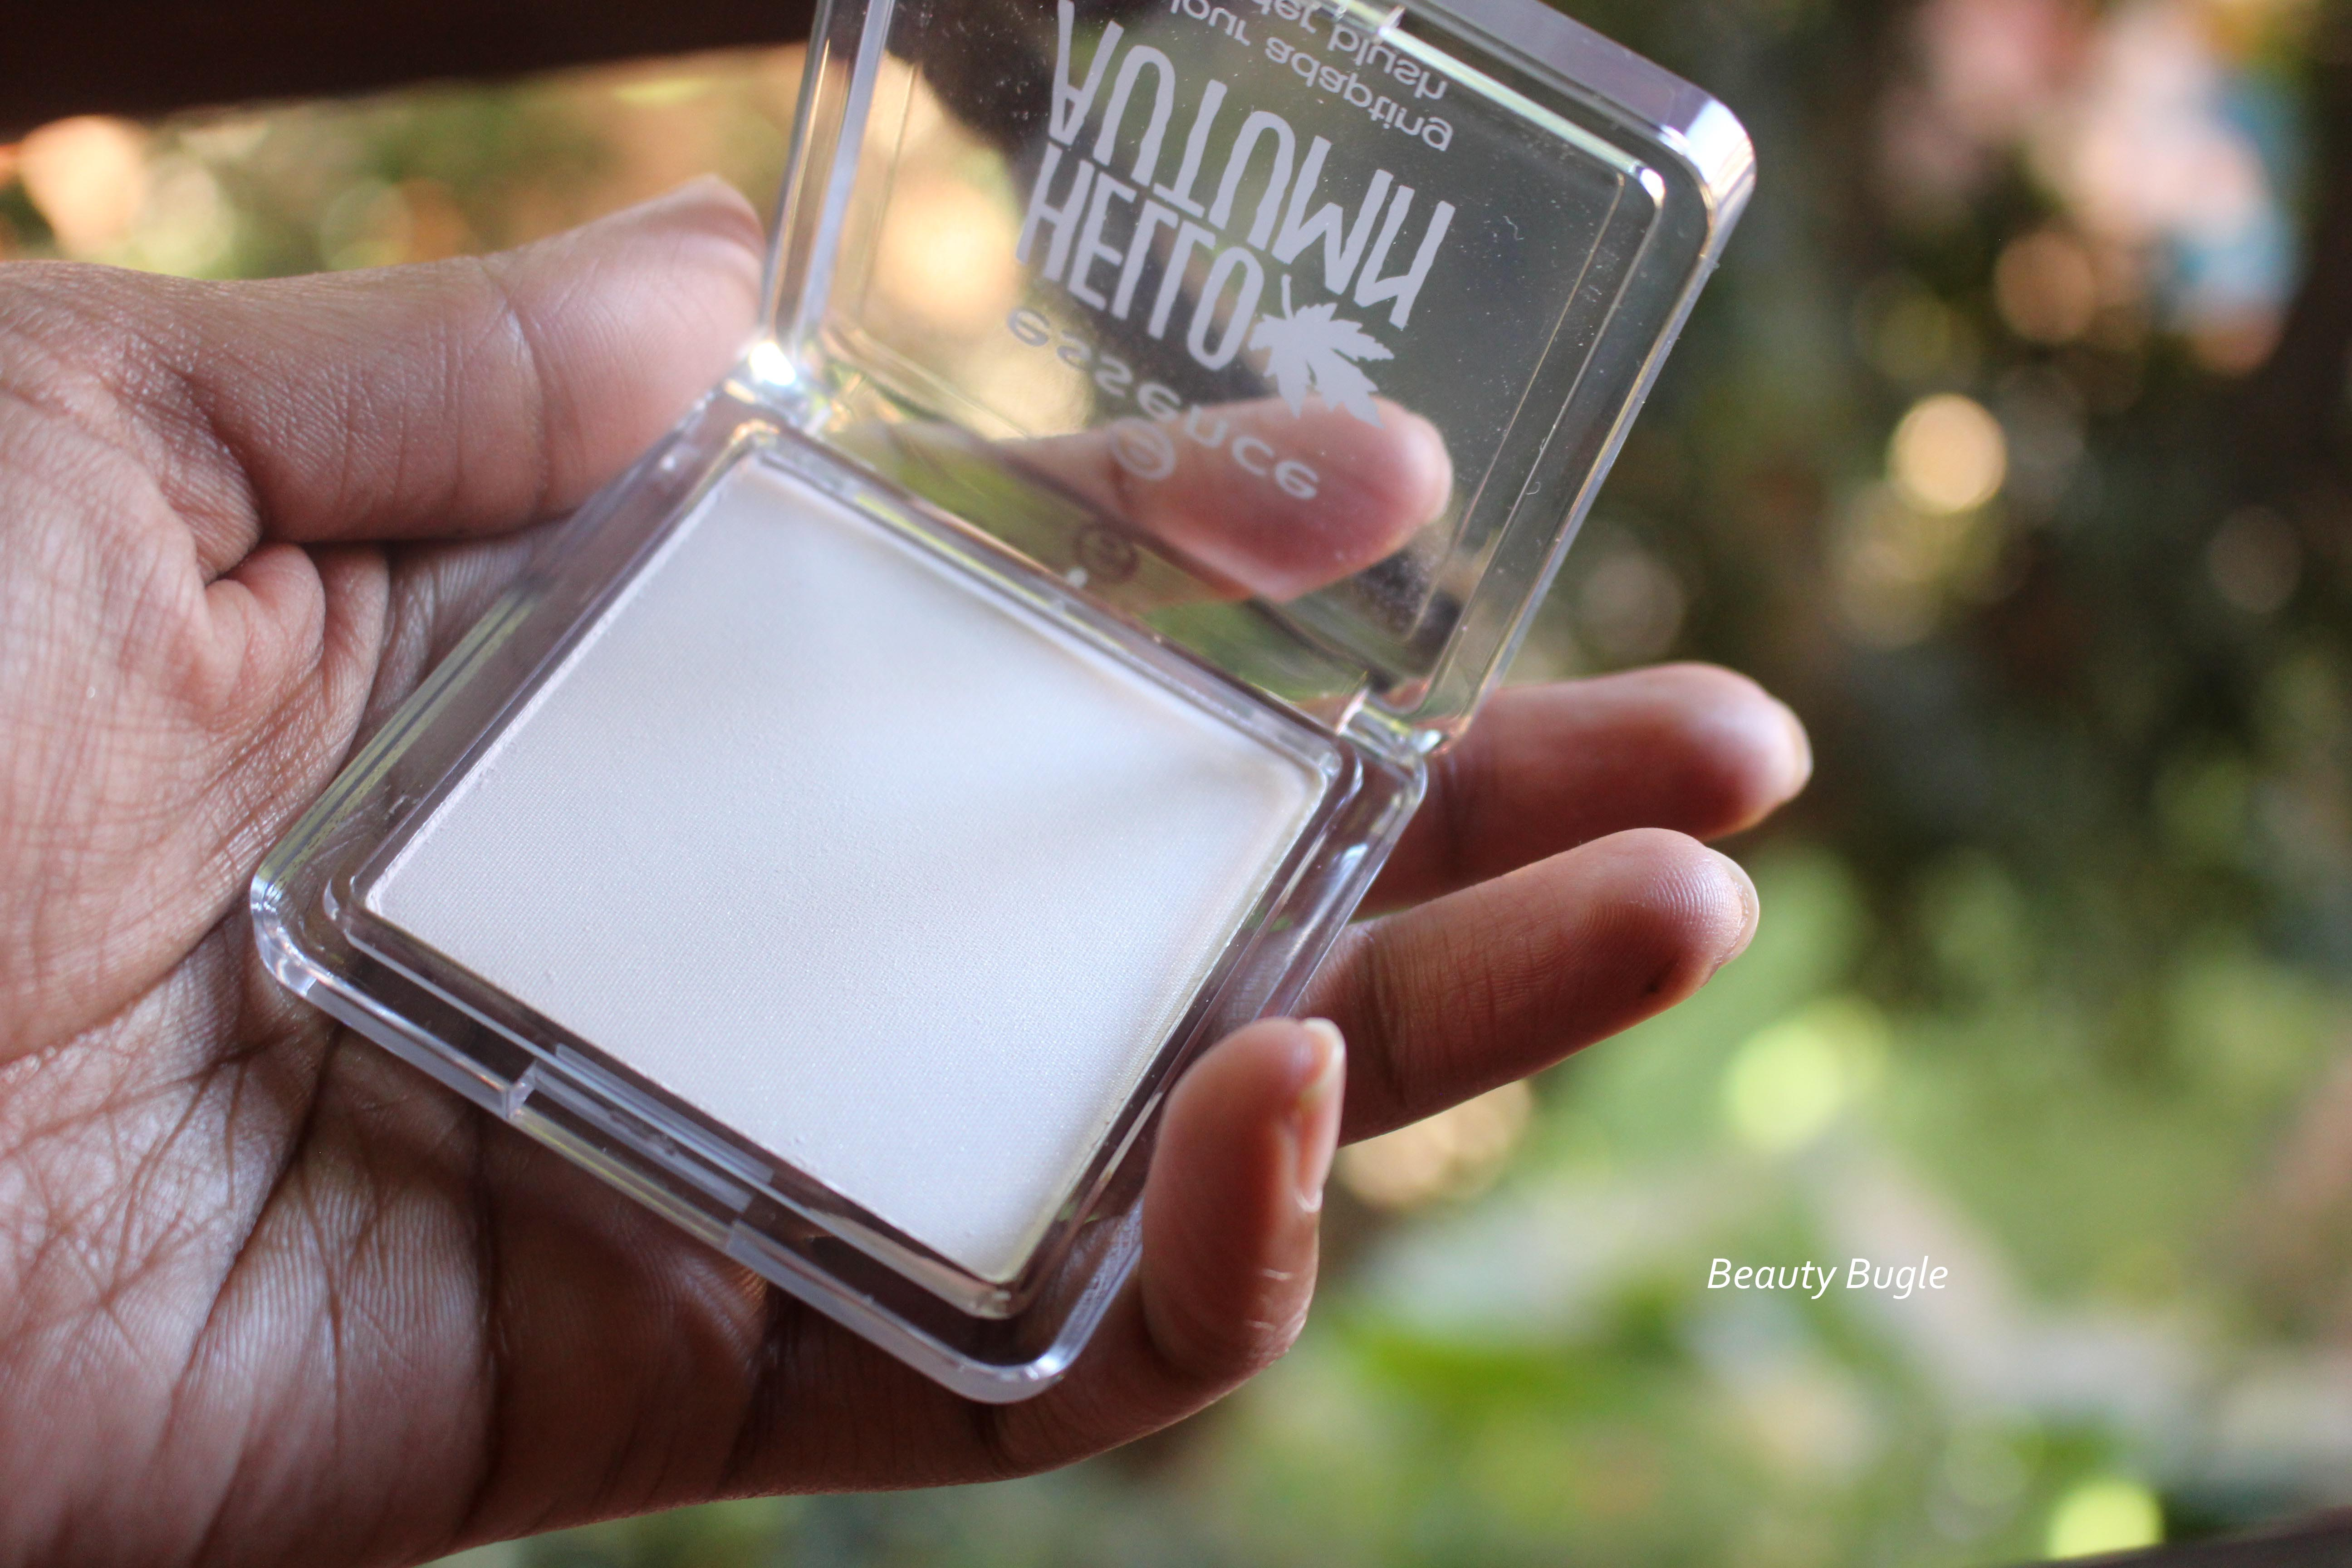 Essence Hello Autumn Beautifall-Red Colour adapting powder blush is a shimmery pale pink ivory in the pan.